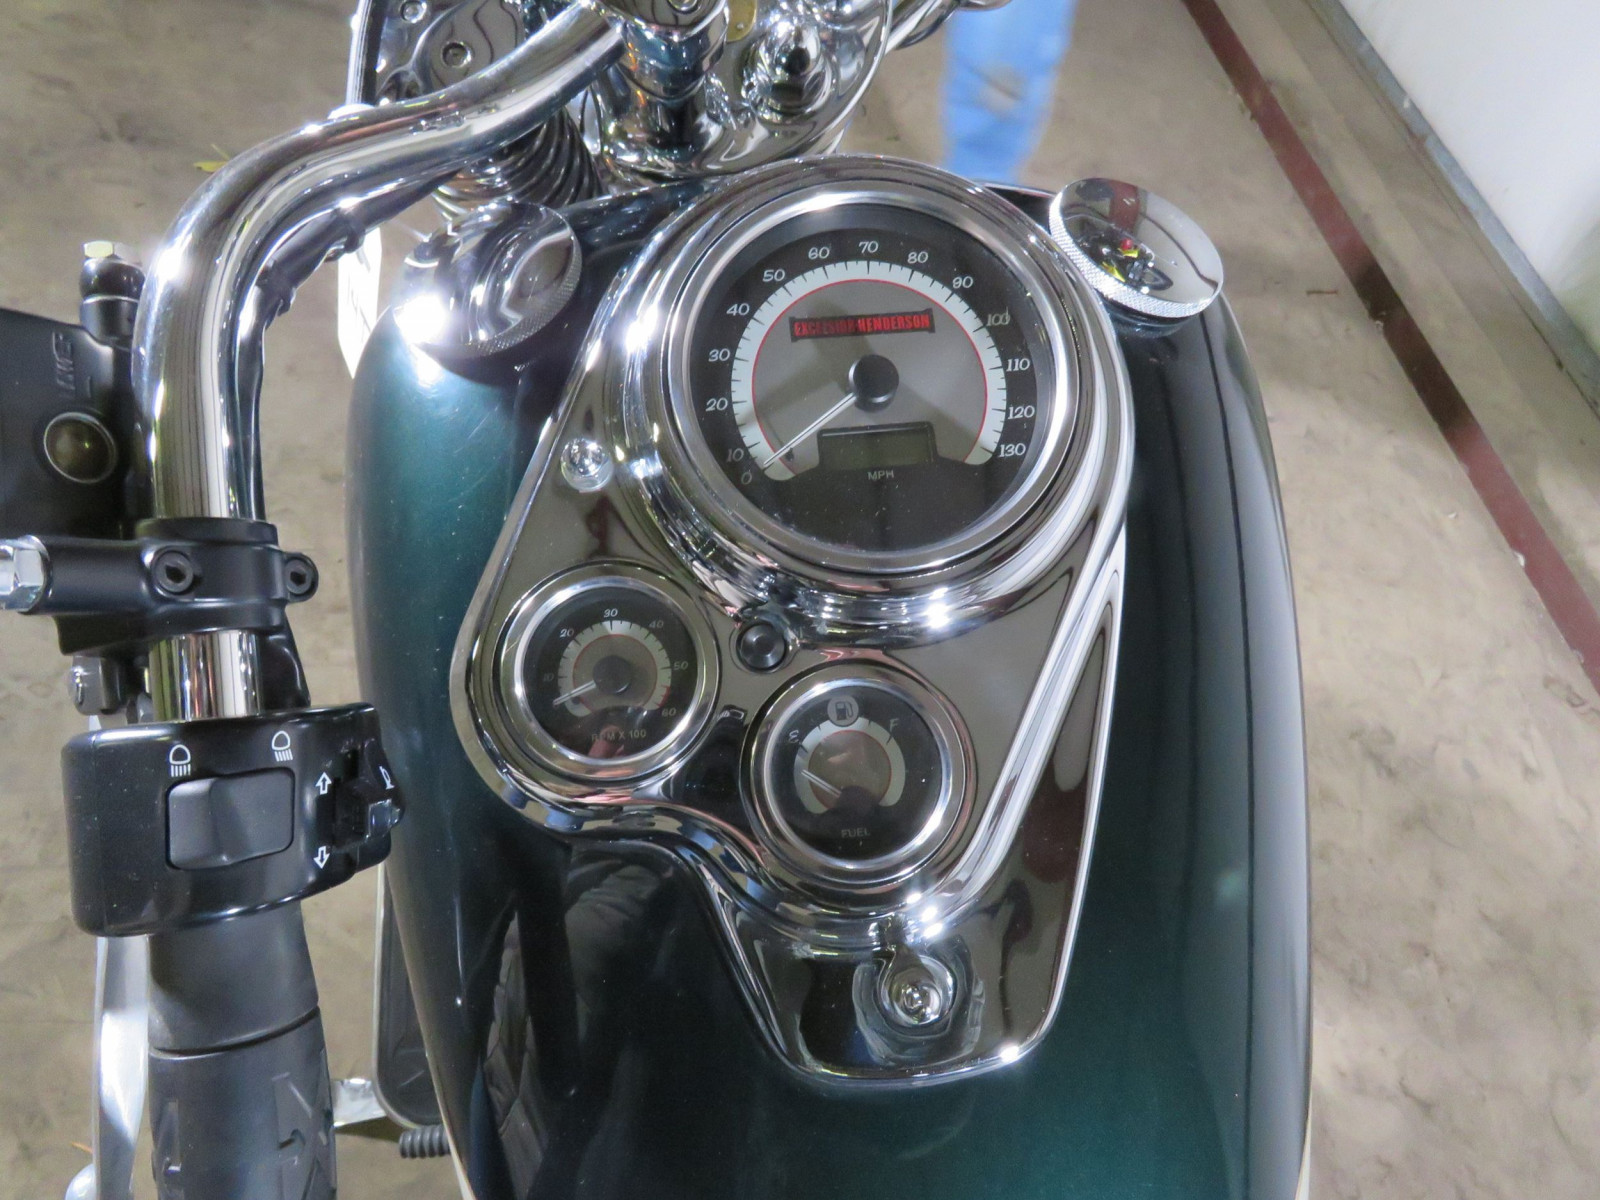 2000 Excelsior Henderson Super X Motorcycle - Image 3